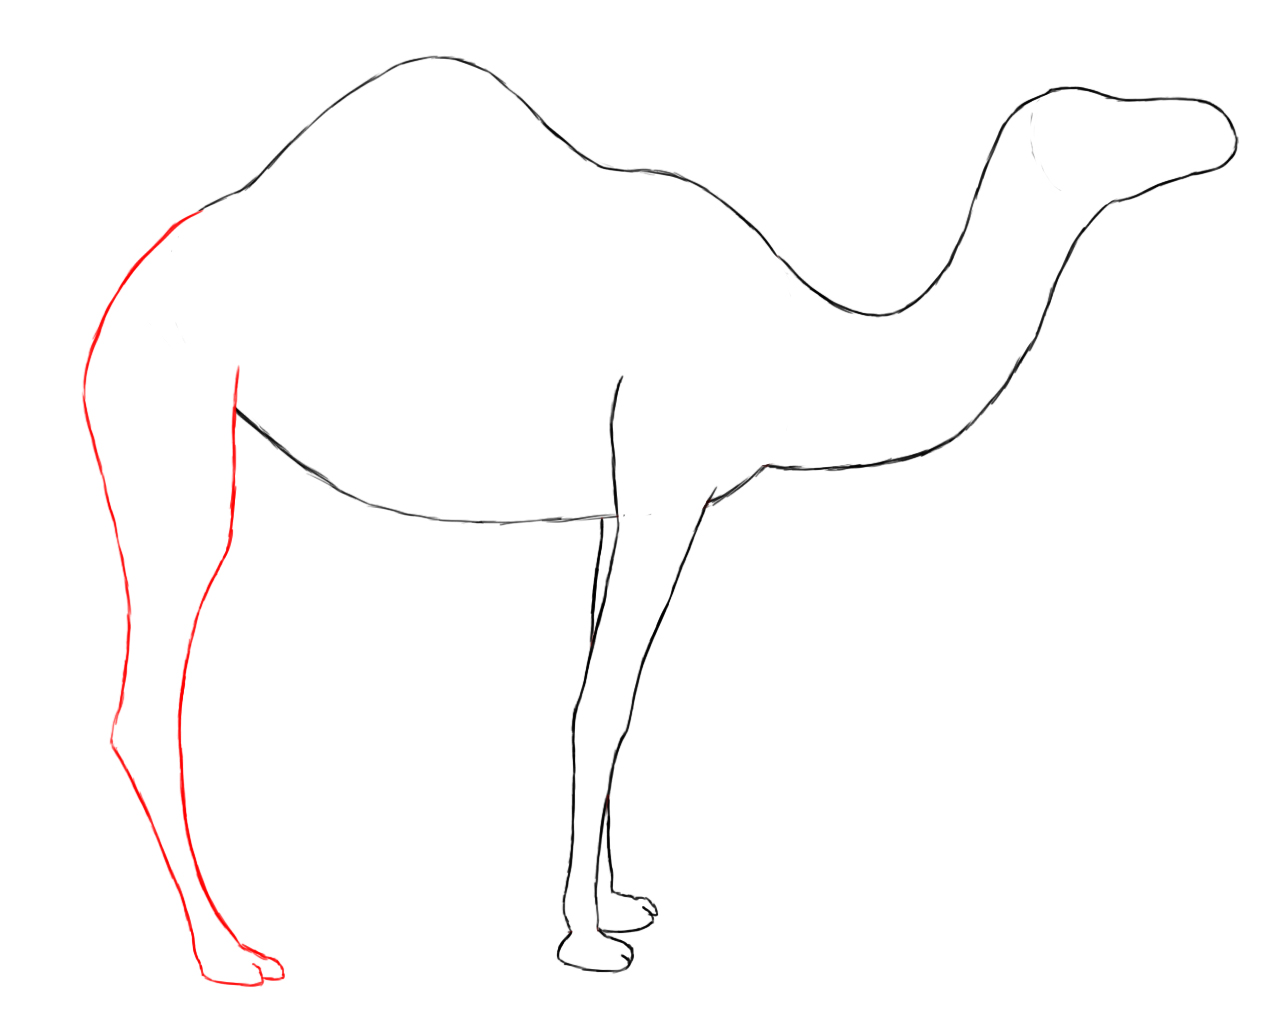 Drawn camels line drawing To technique same exact they